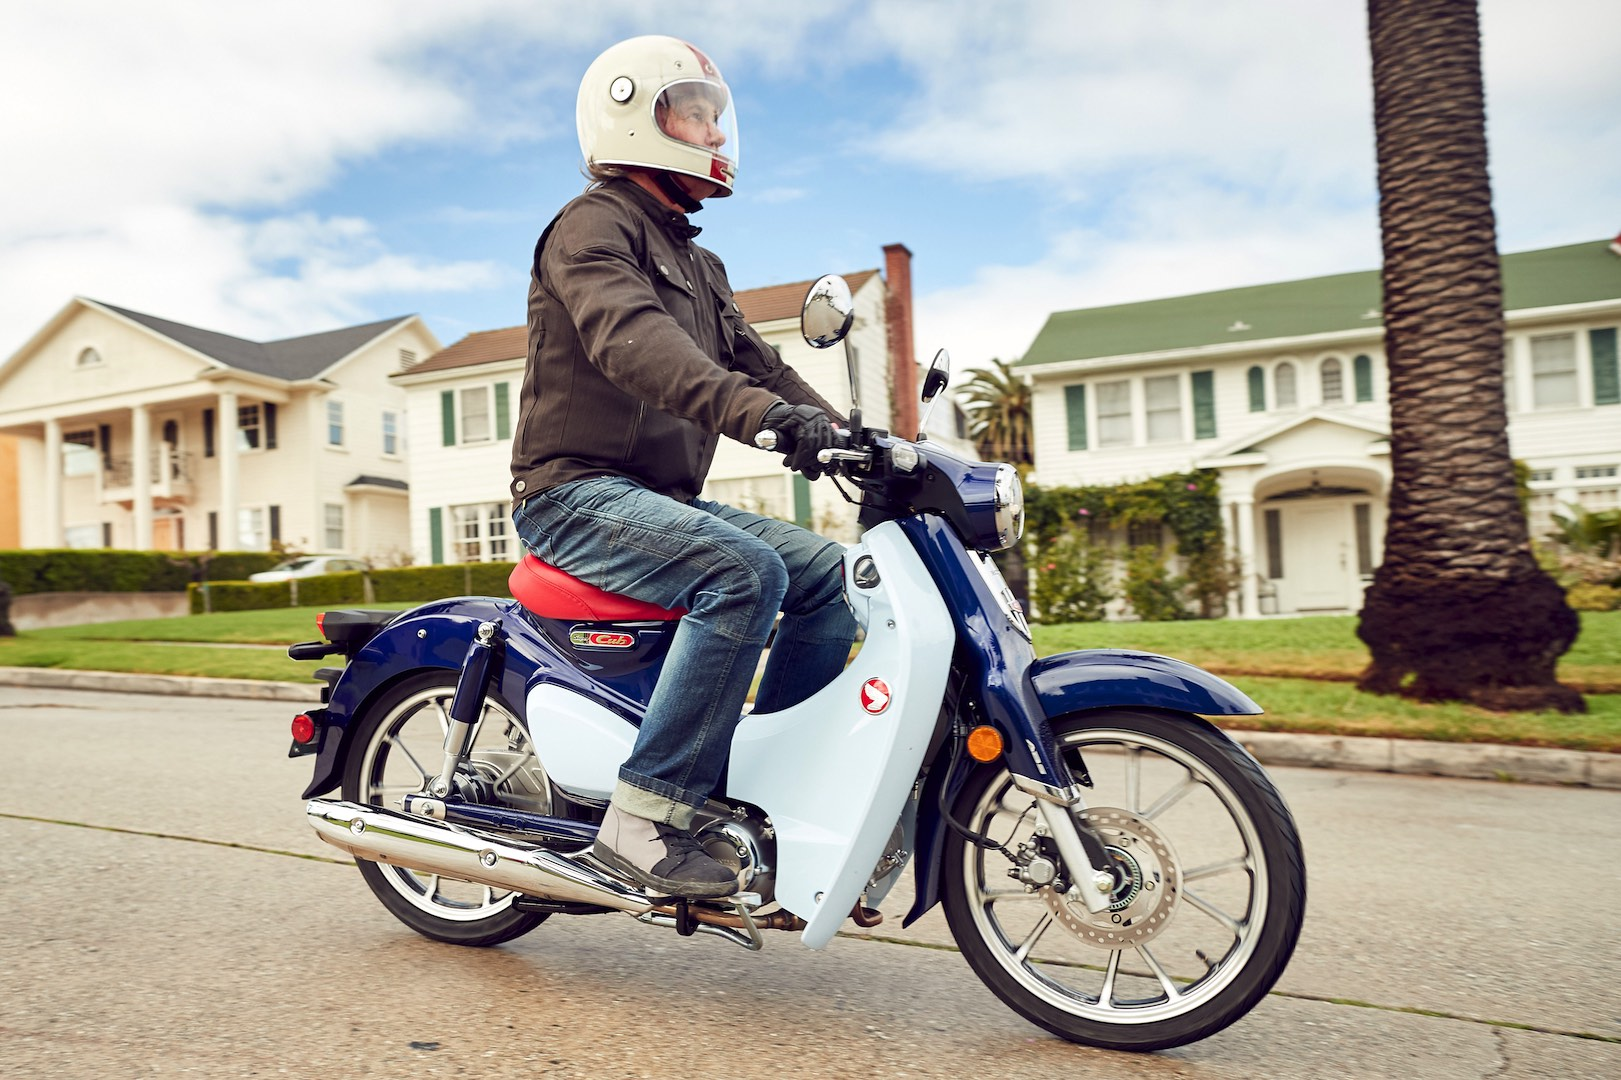 2019 Honda Super Cub C125 ABS Review - urban motorcycle